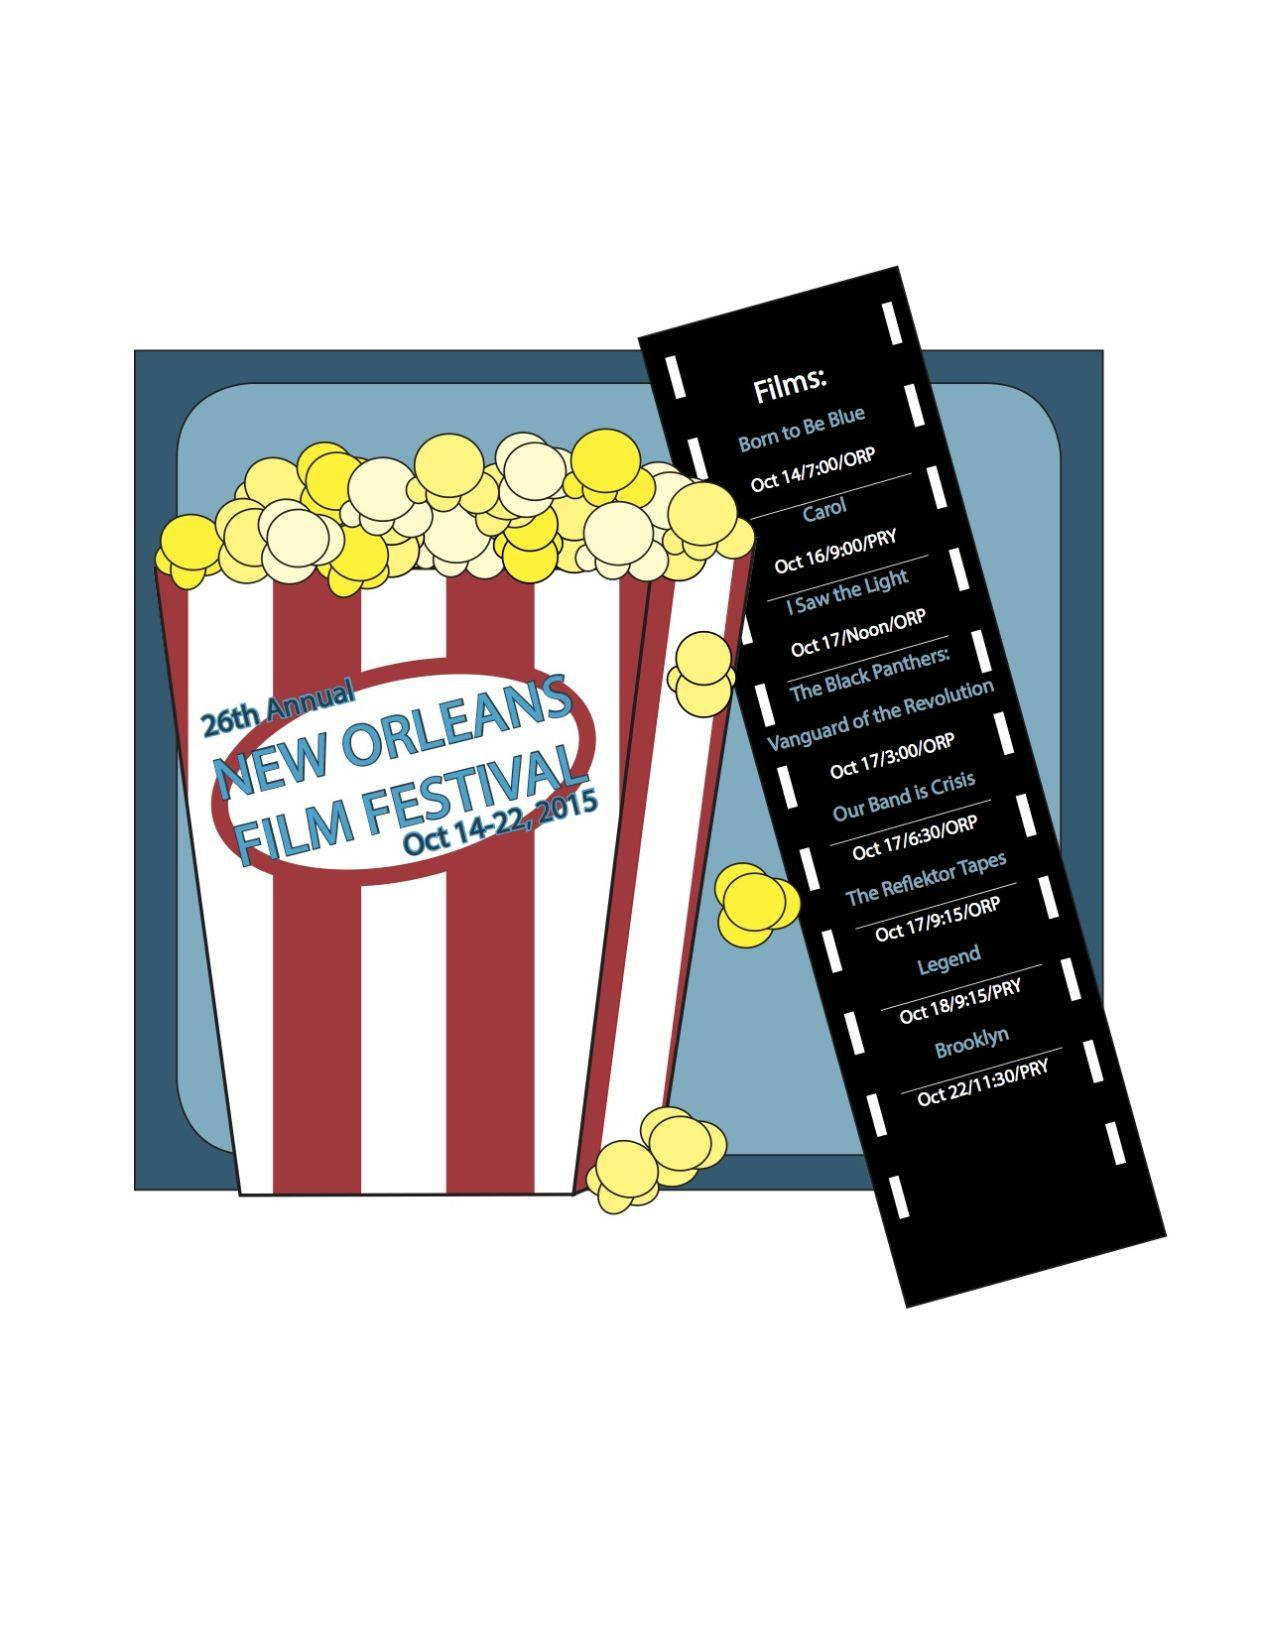 The 26th annual New Orleans Film Festival will feature many films including an opening and closing screening, a centerpiece and eight spotlight films.